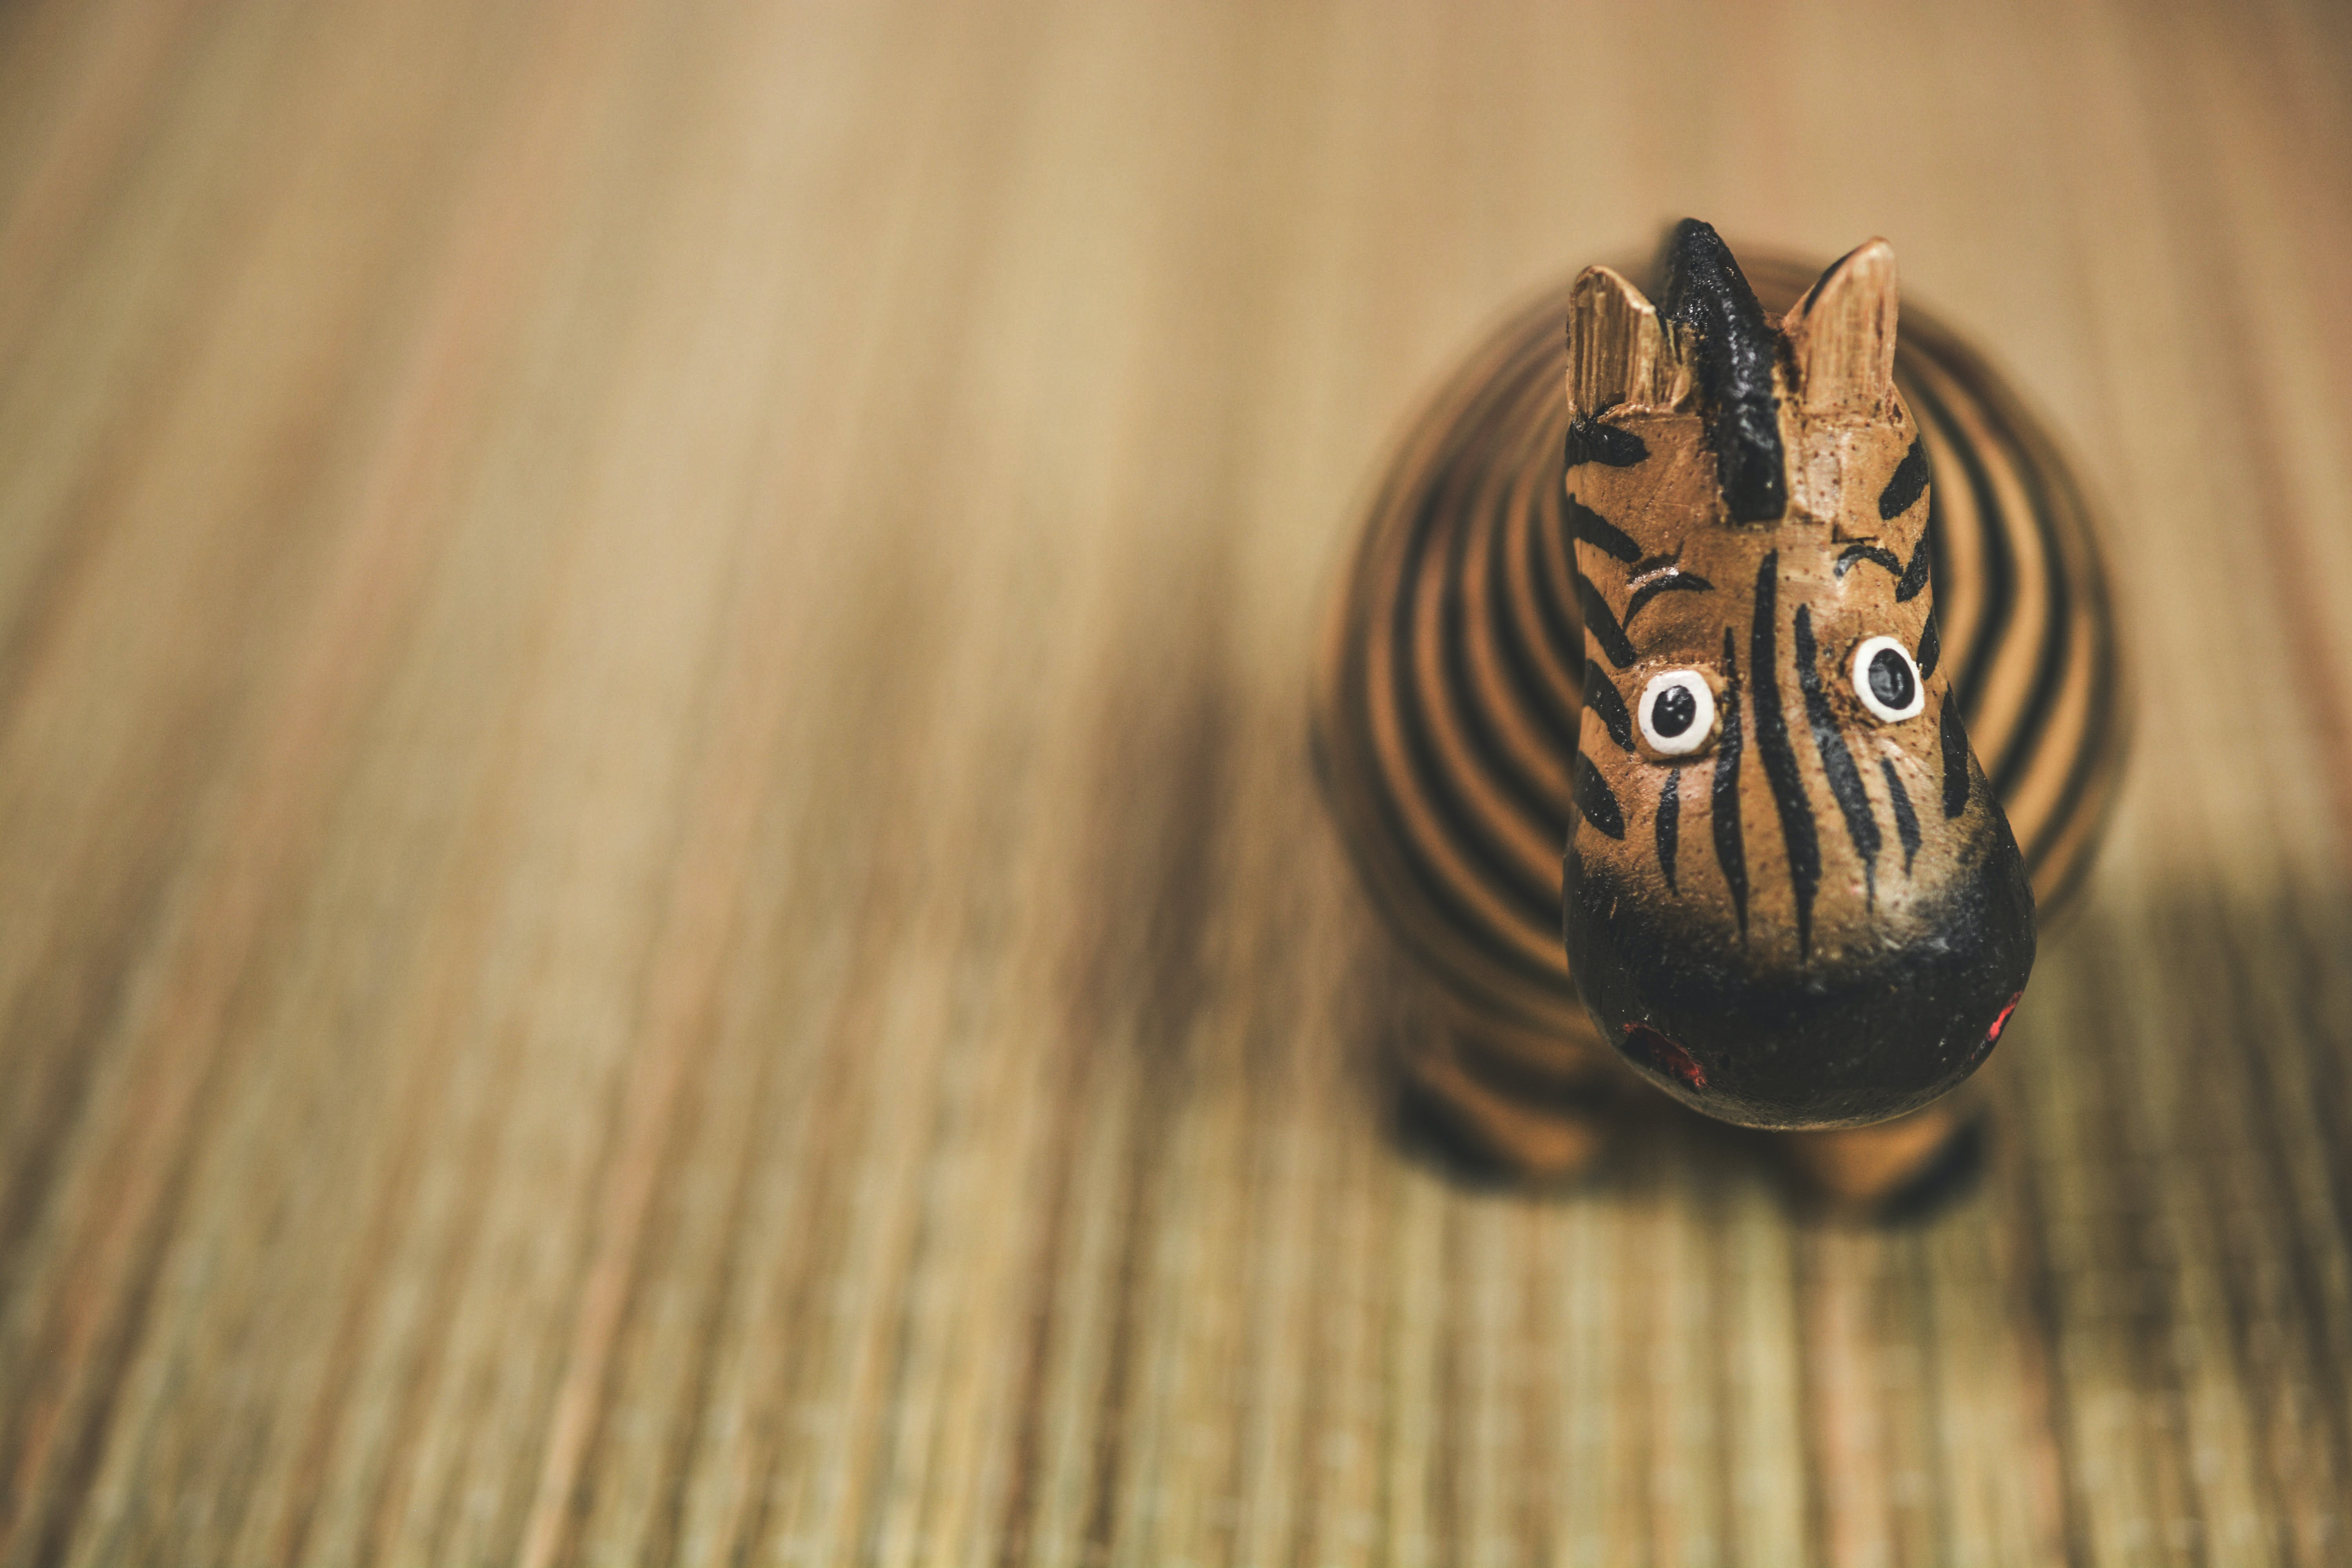 Close Photography of Beige and Black Zebra Toy